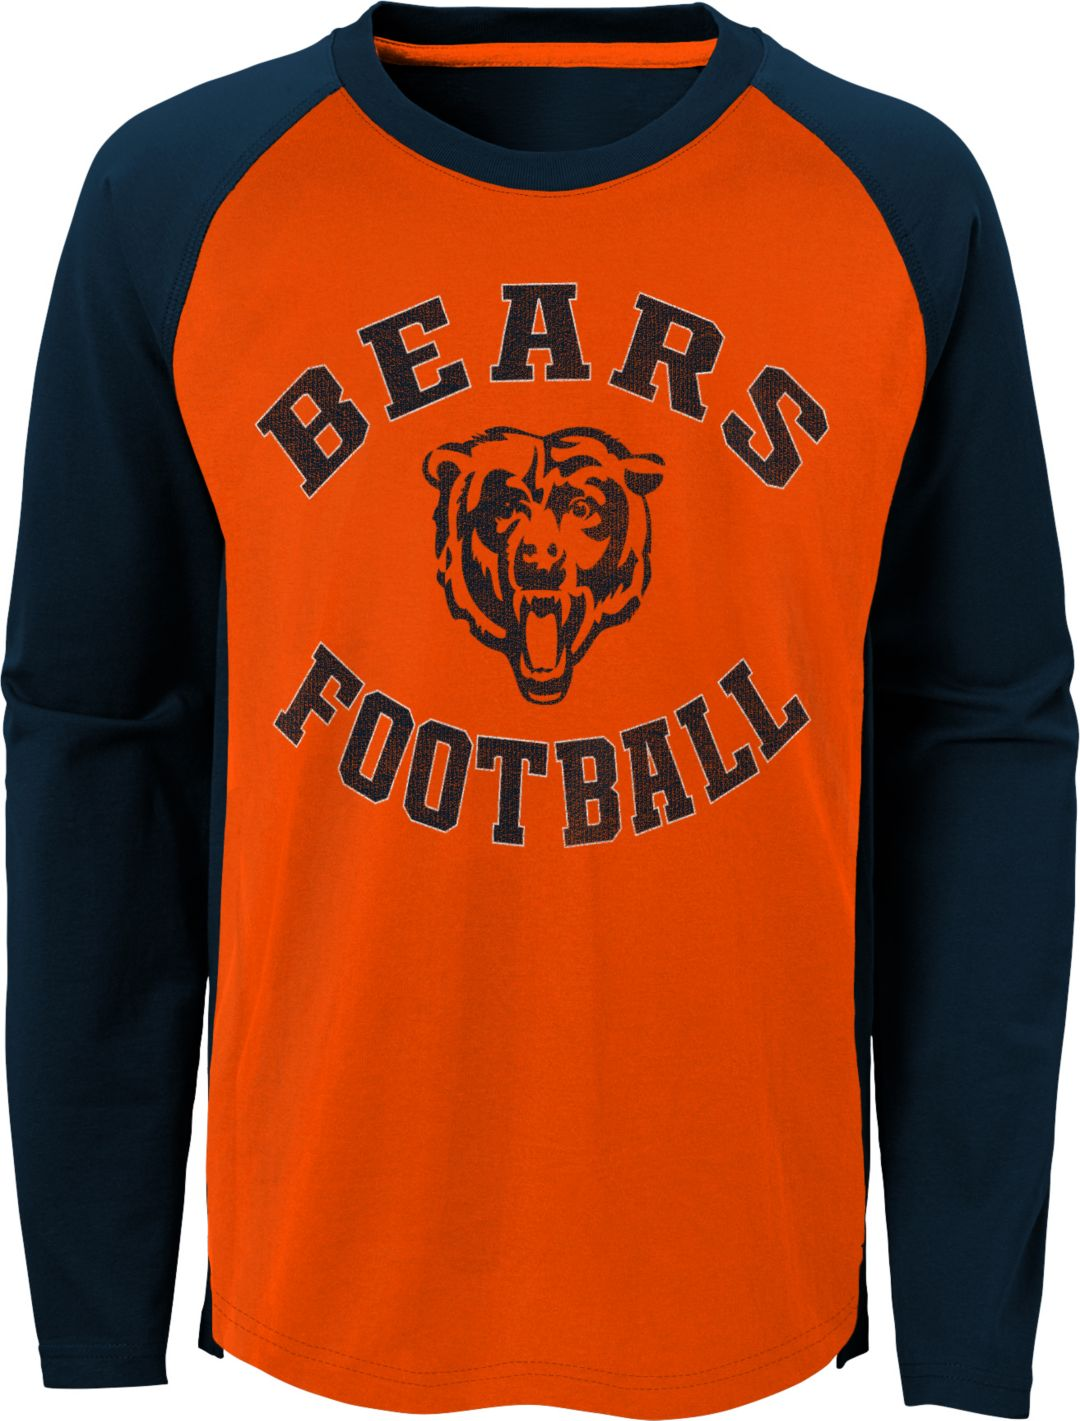 promo code 1e3ee 78cbc NFL Team Apparel Youth Chicago Bears Air Raid Long Sleeve Navy Shirt